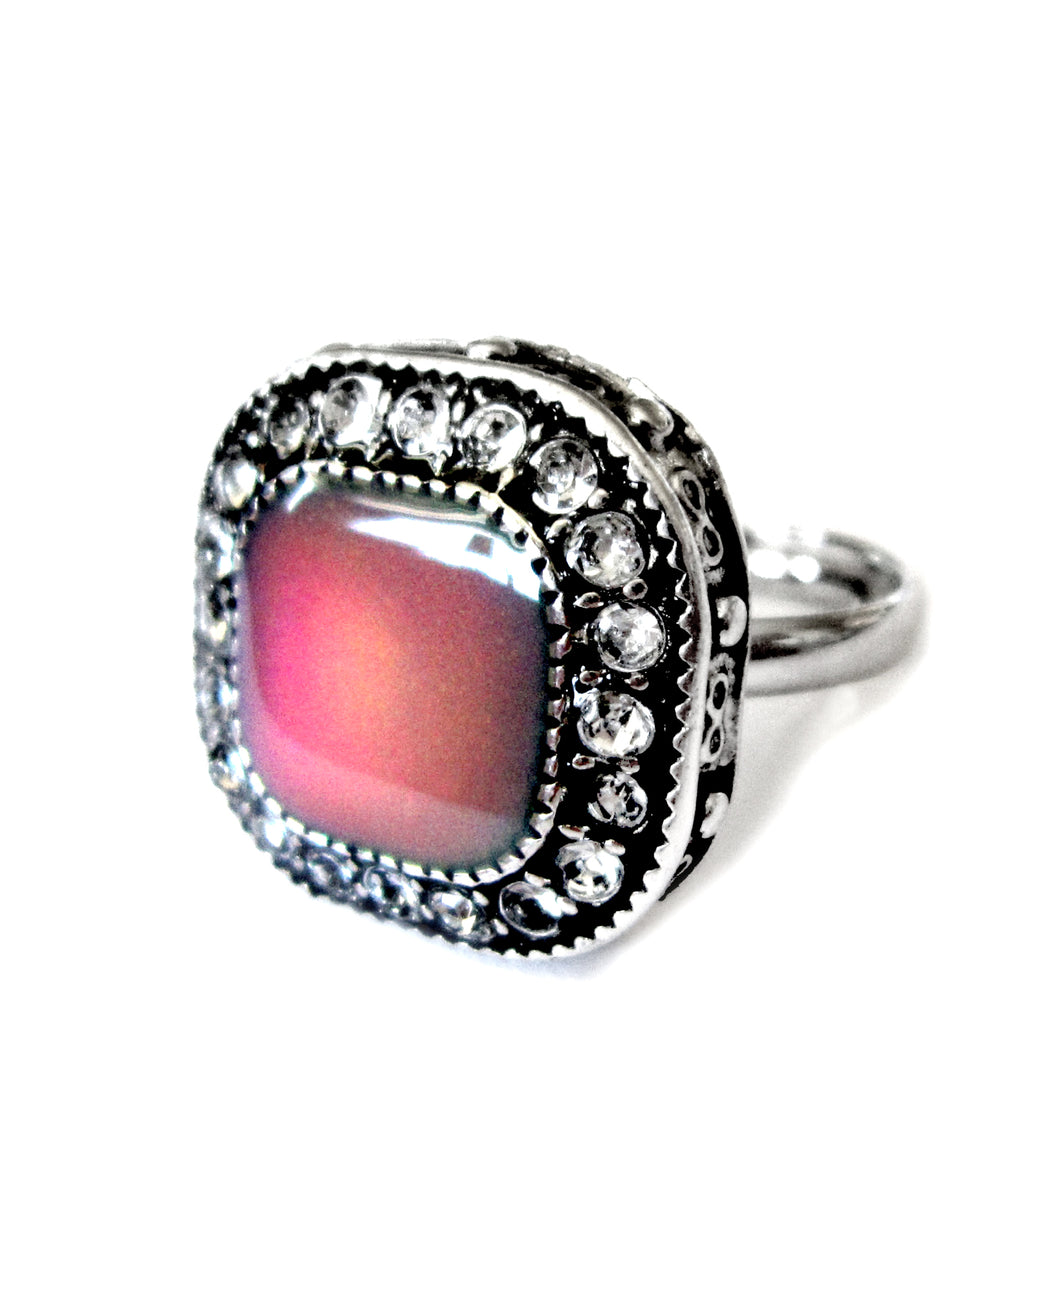 Ornate Mood Ring